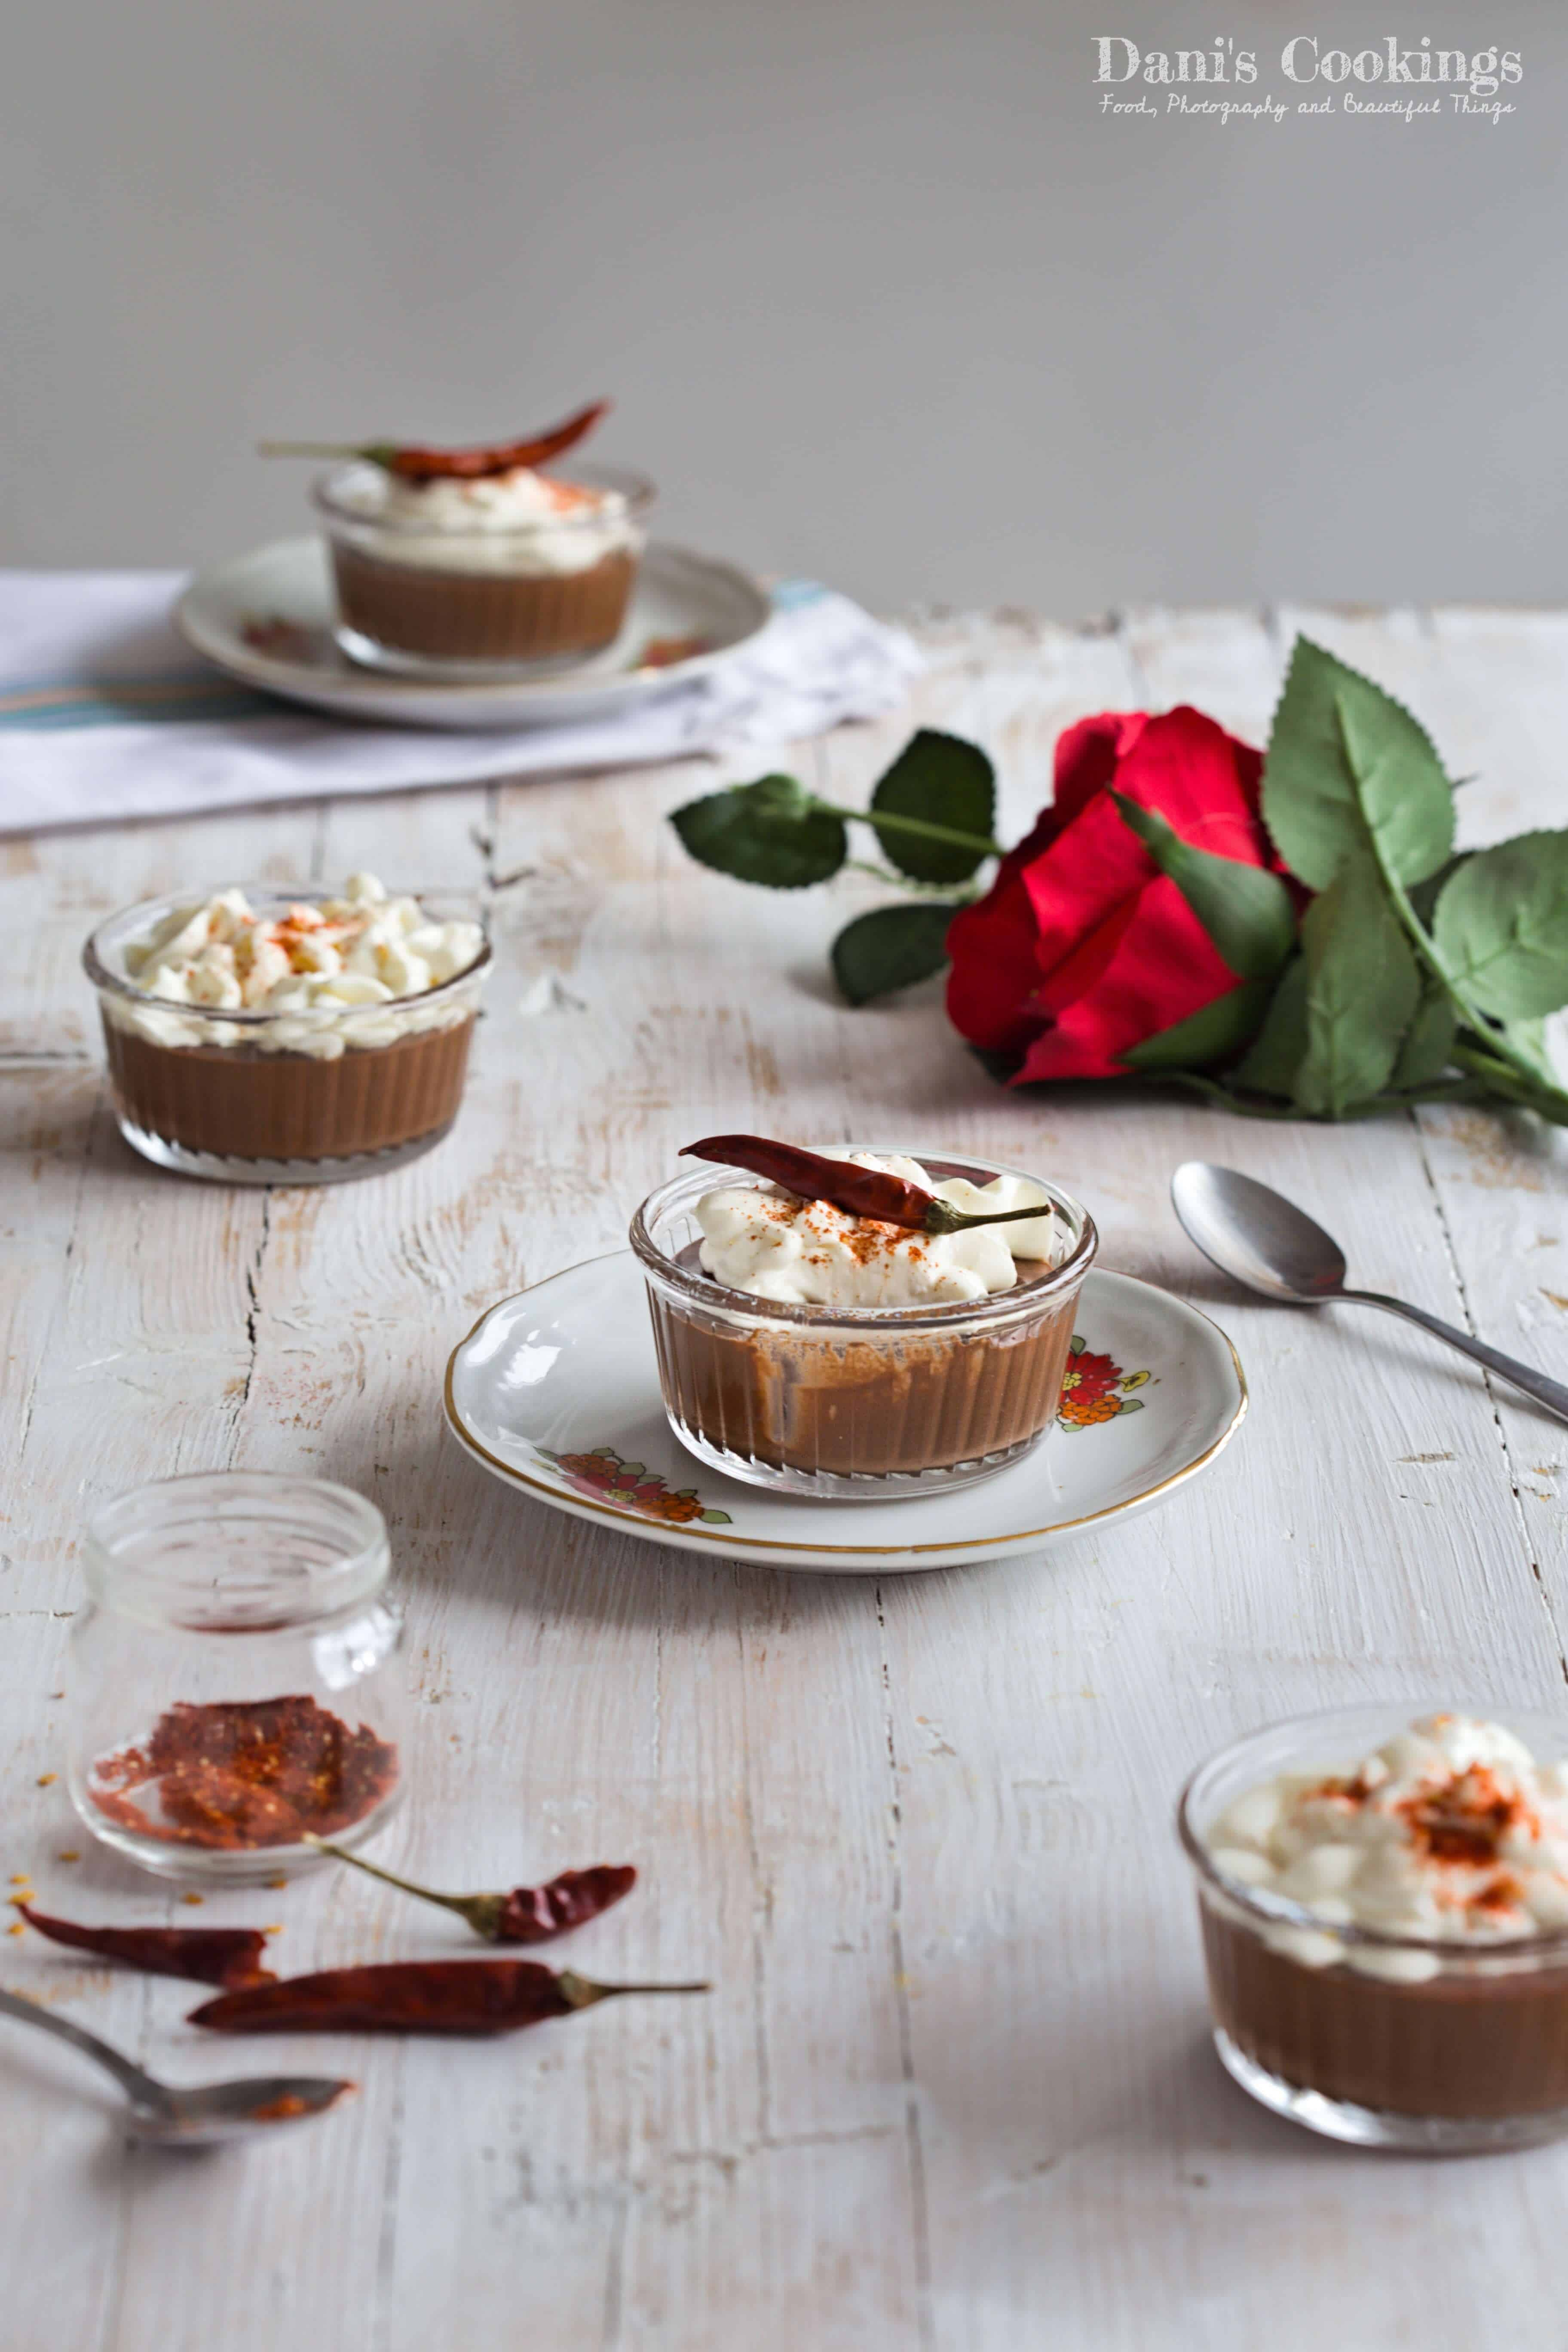 Spicy Chocolate Mousse With Sour Cream Garnish Dani S Cookings